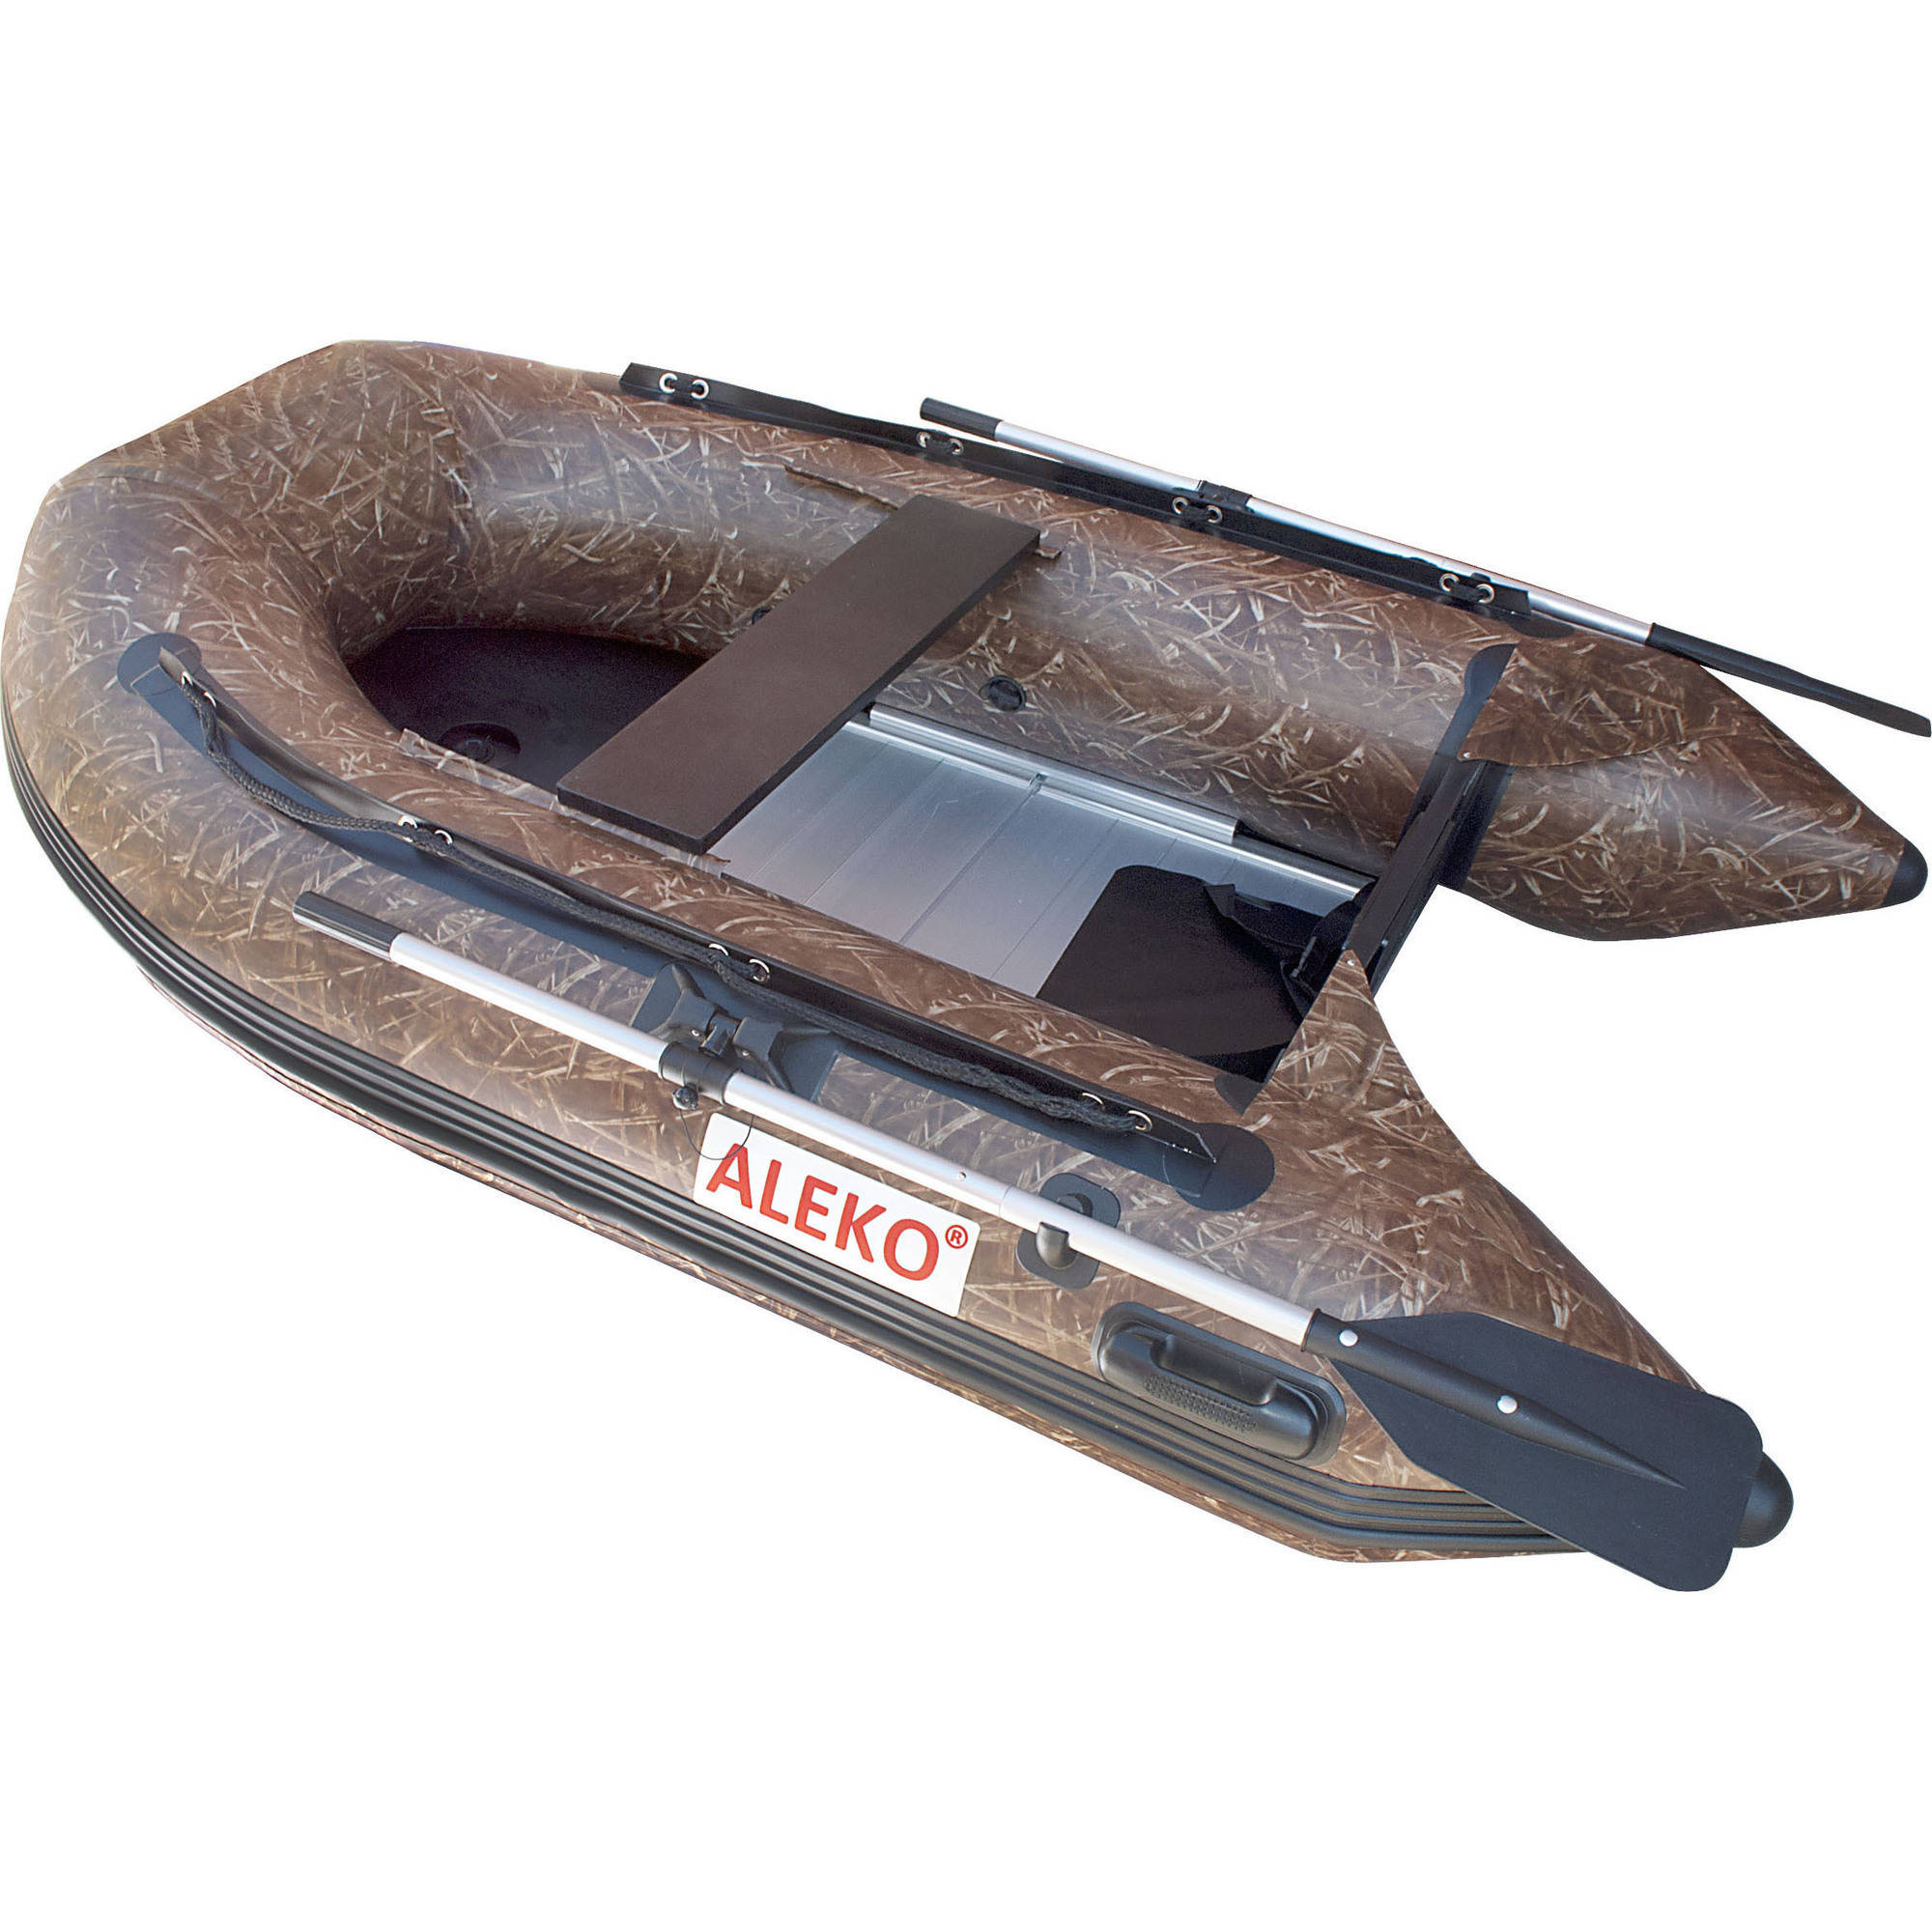 Aleko bt250hu inflatable boat 8 39 4 with aluminum floor 4 for 4 person fishing boat